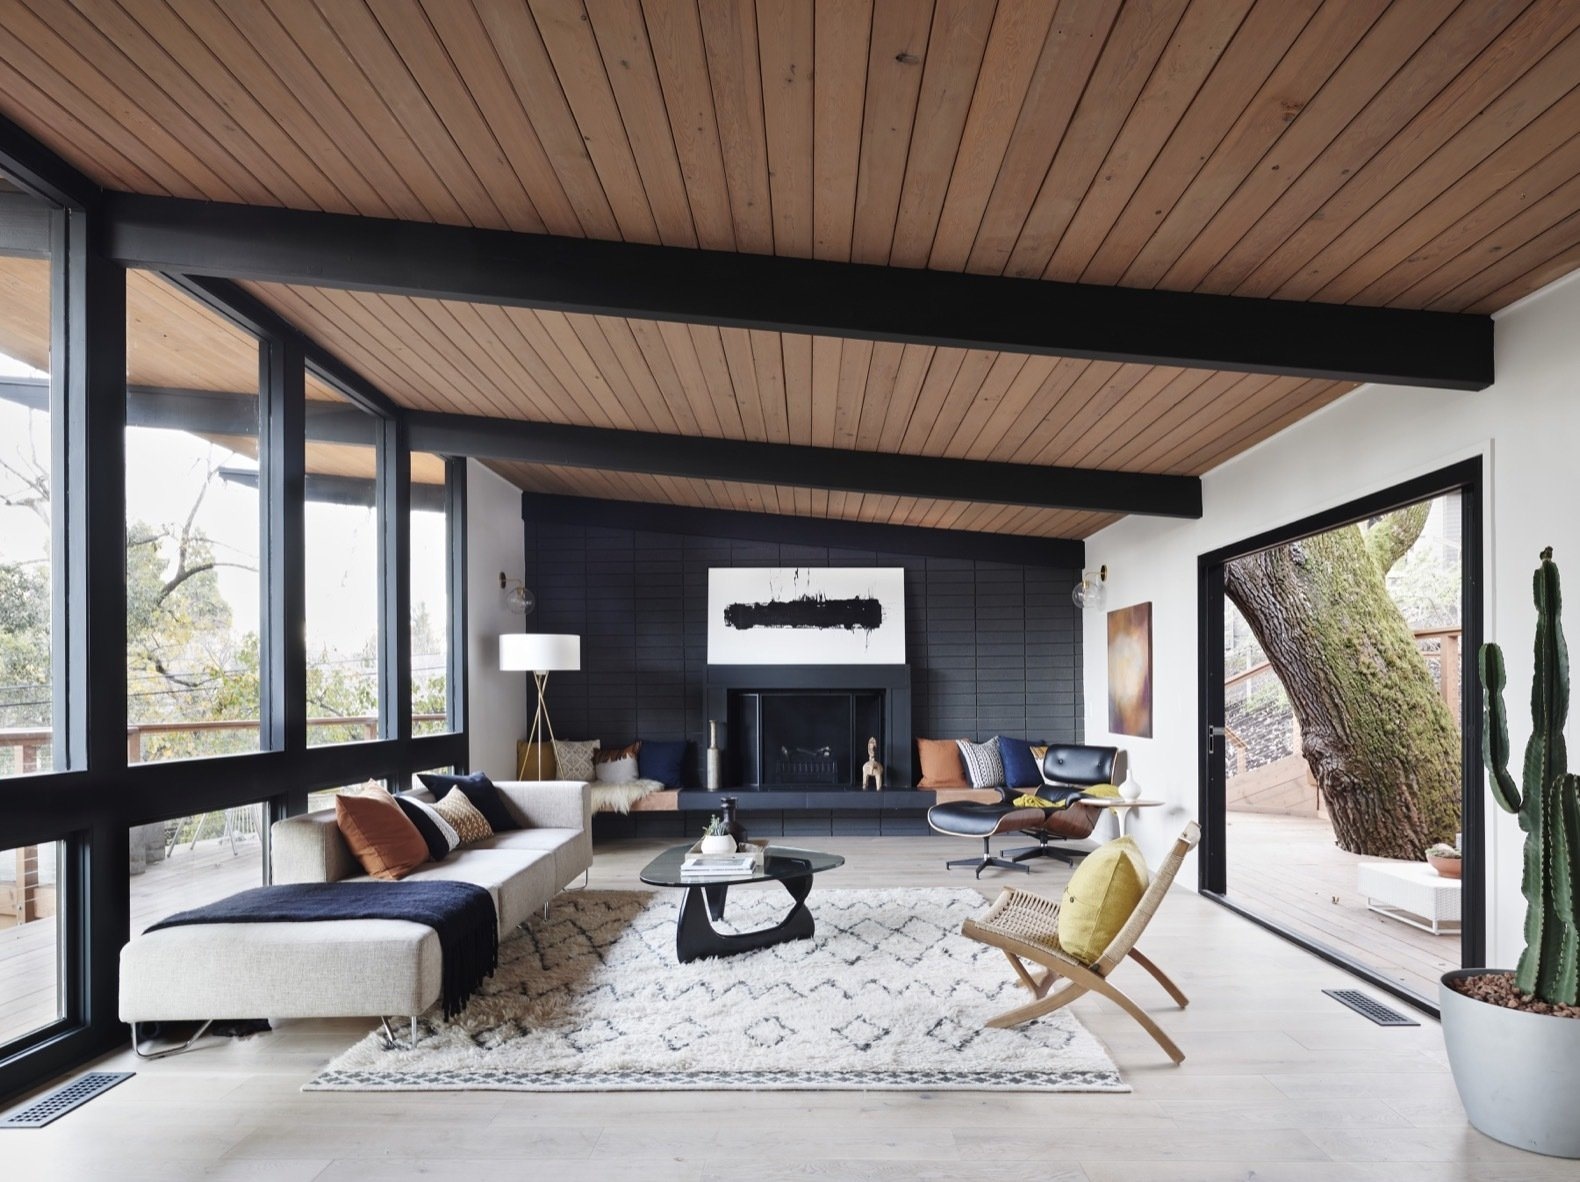 Before & After: A Midcentury Wrapped Around an Oak Tree Turns Over a New Leaf